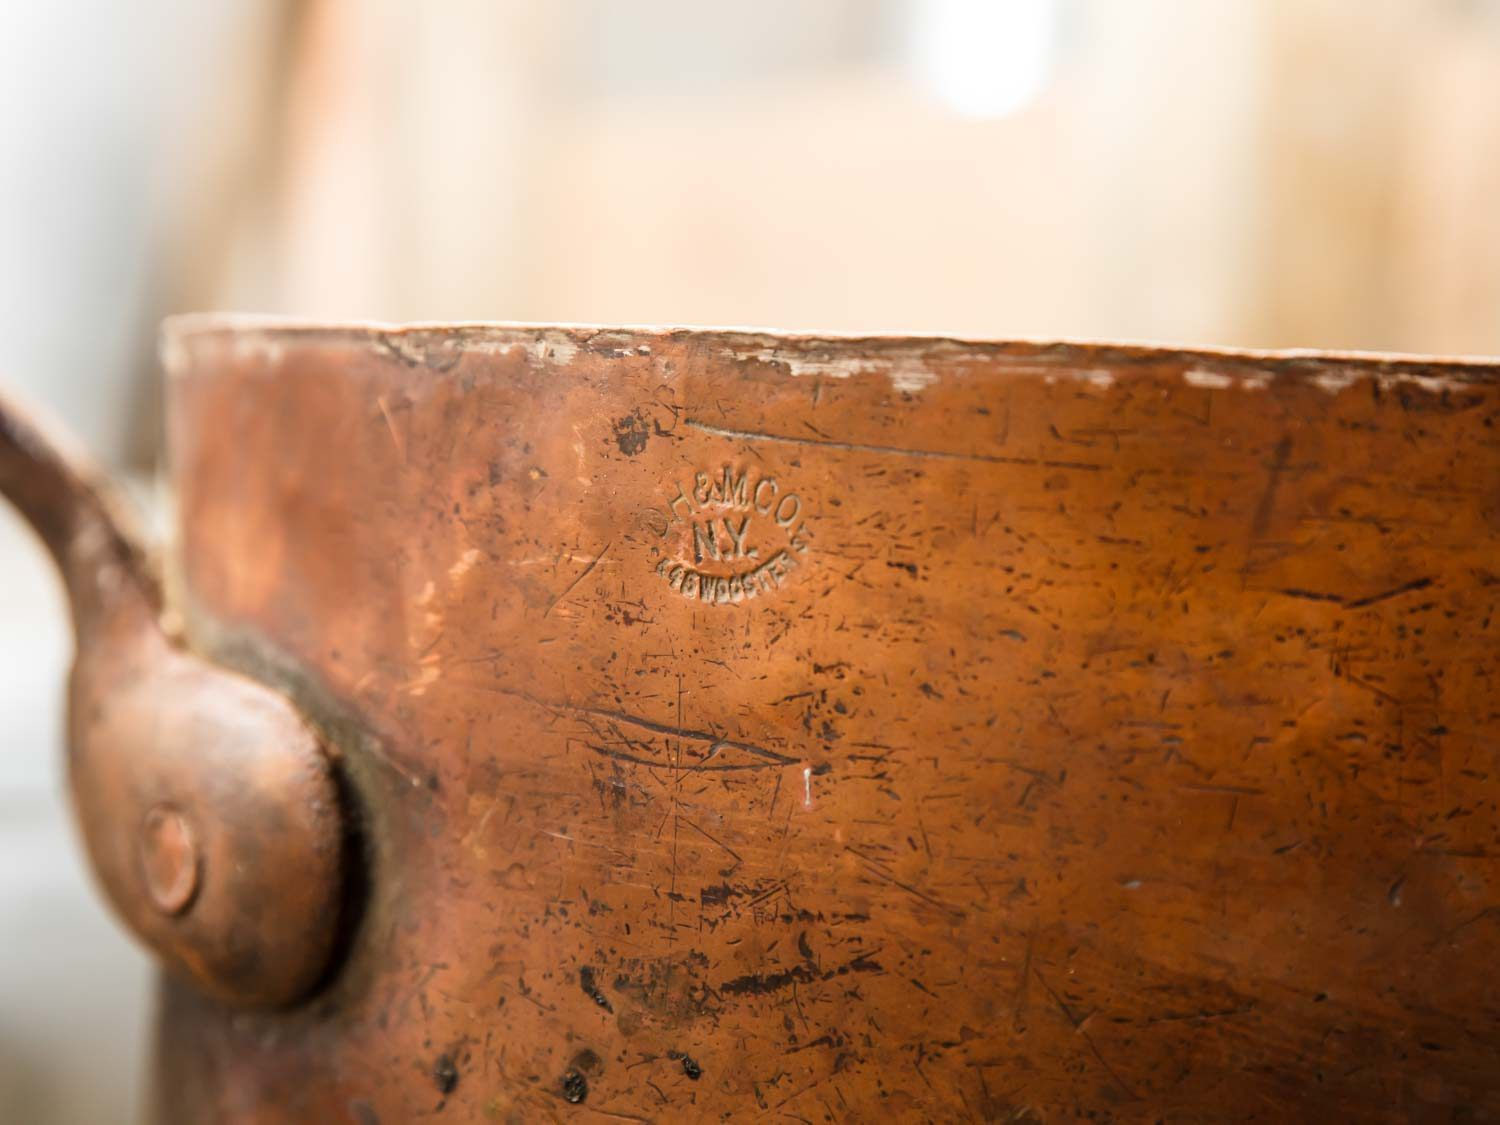 A close-up of the company stamp on a piece of vintage copper cookware